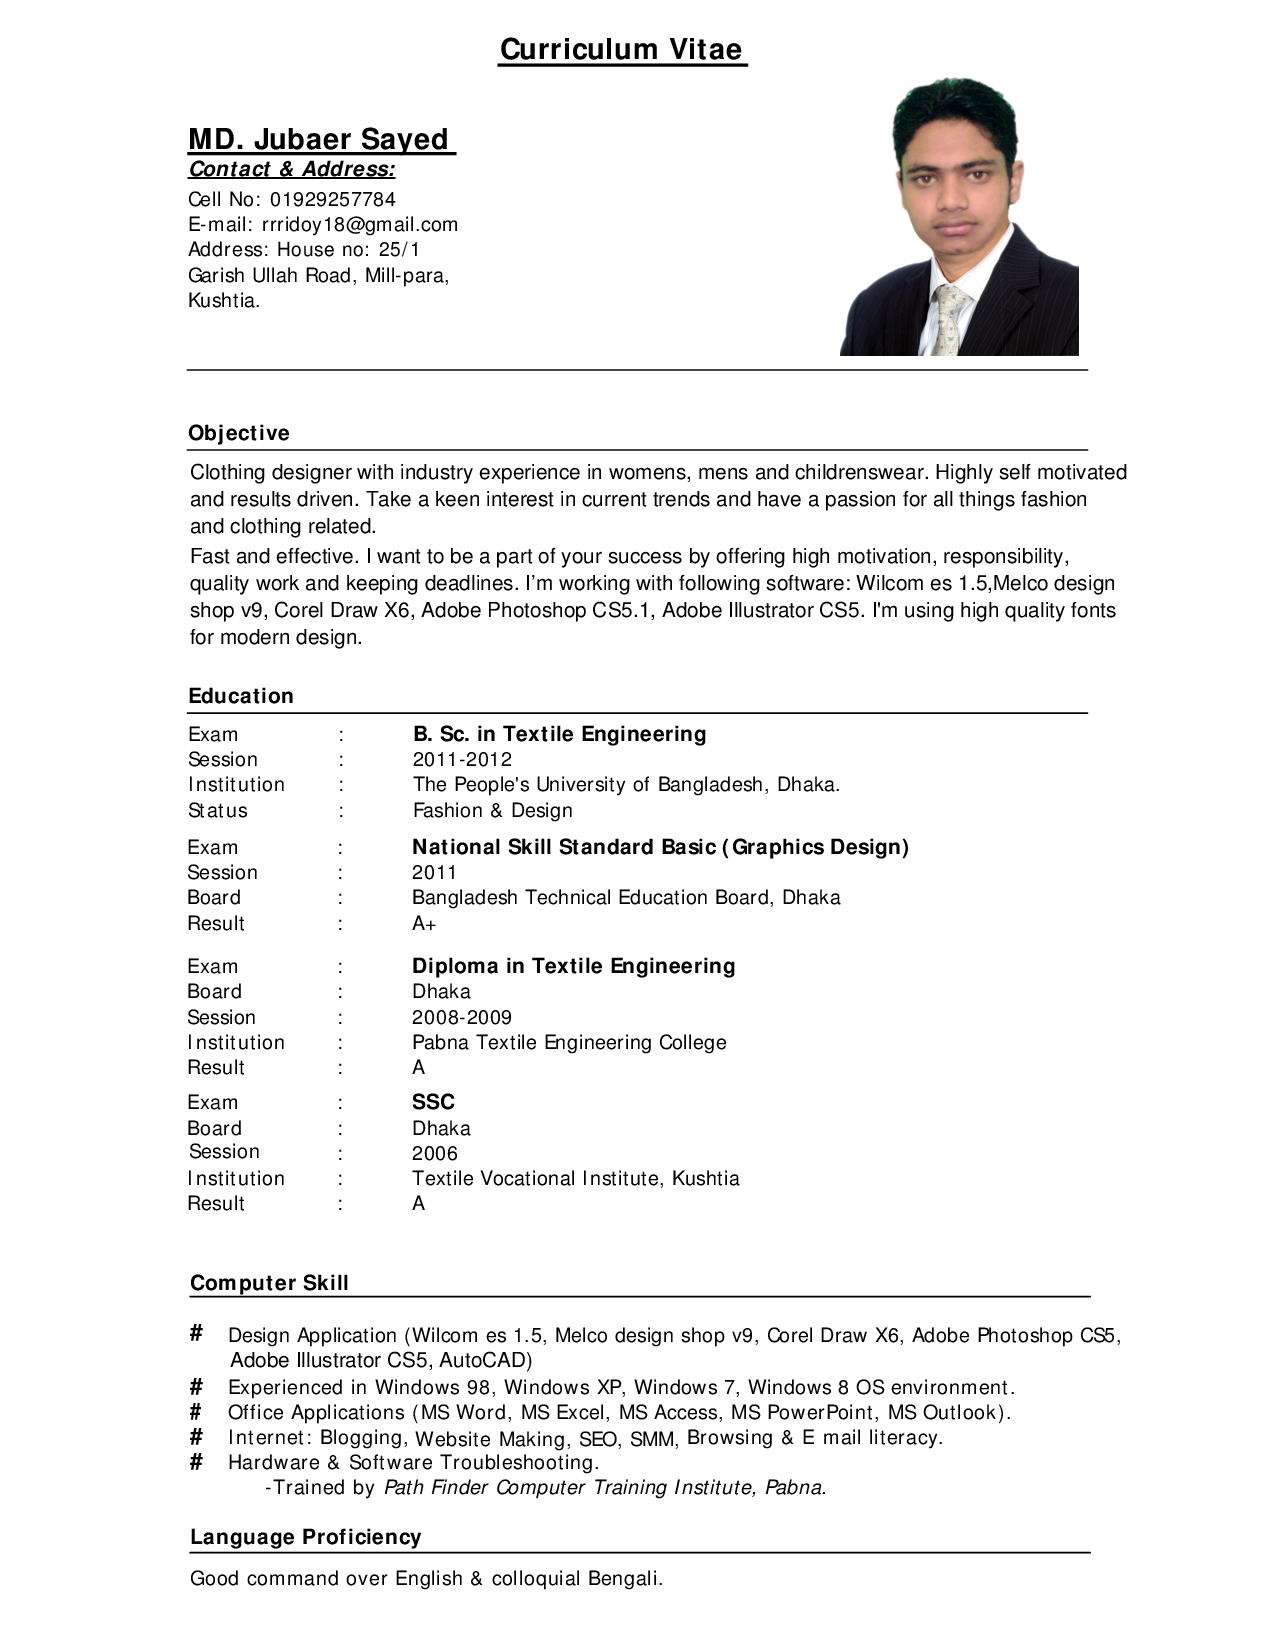 Few Tips On Writing A Perfect Curriculum Vitae Curriculum